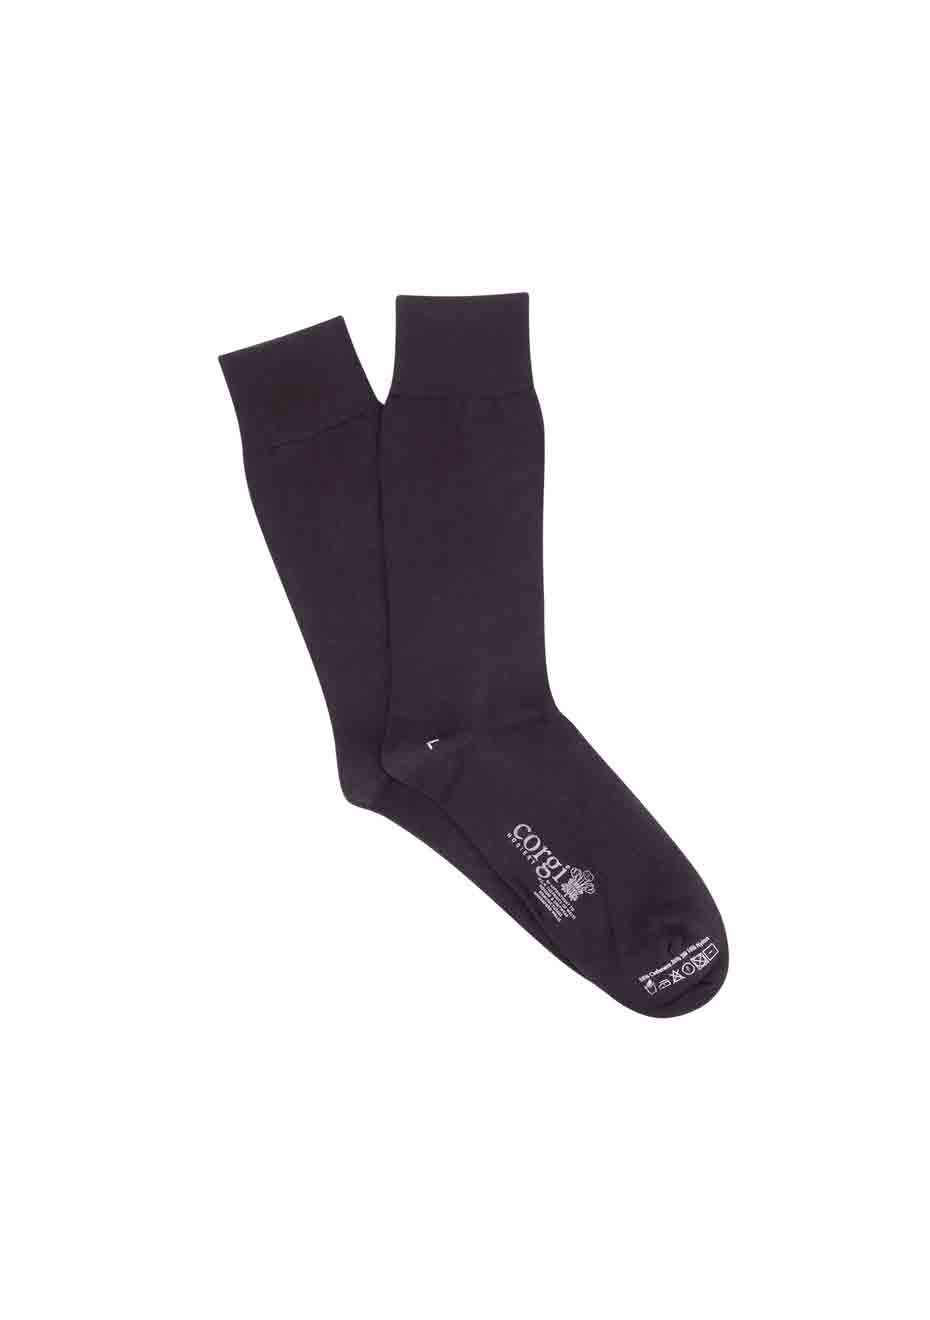 Men's Black Plain Cashmere & Silk Blend Socks